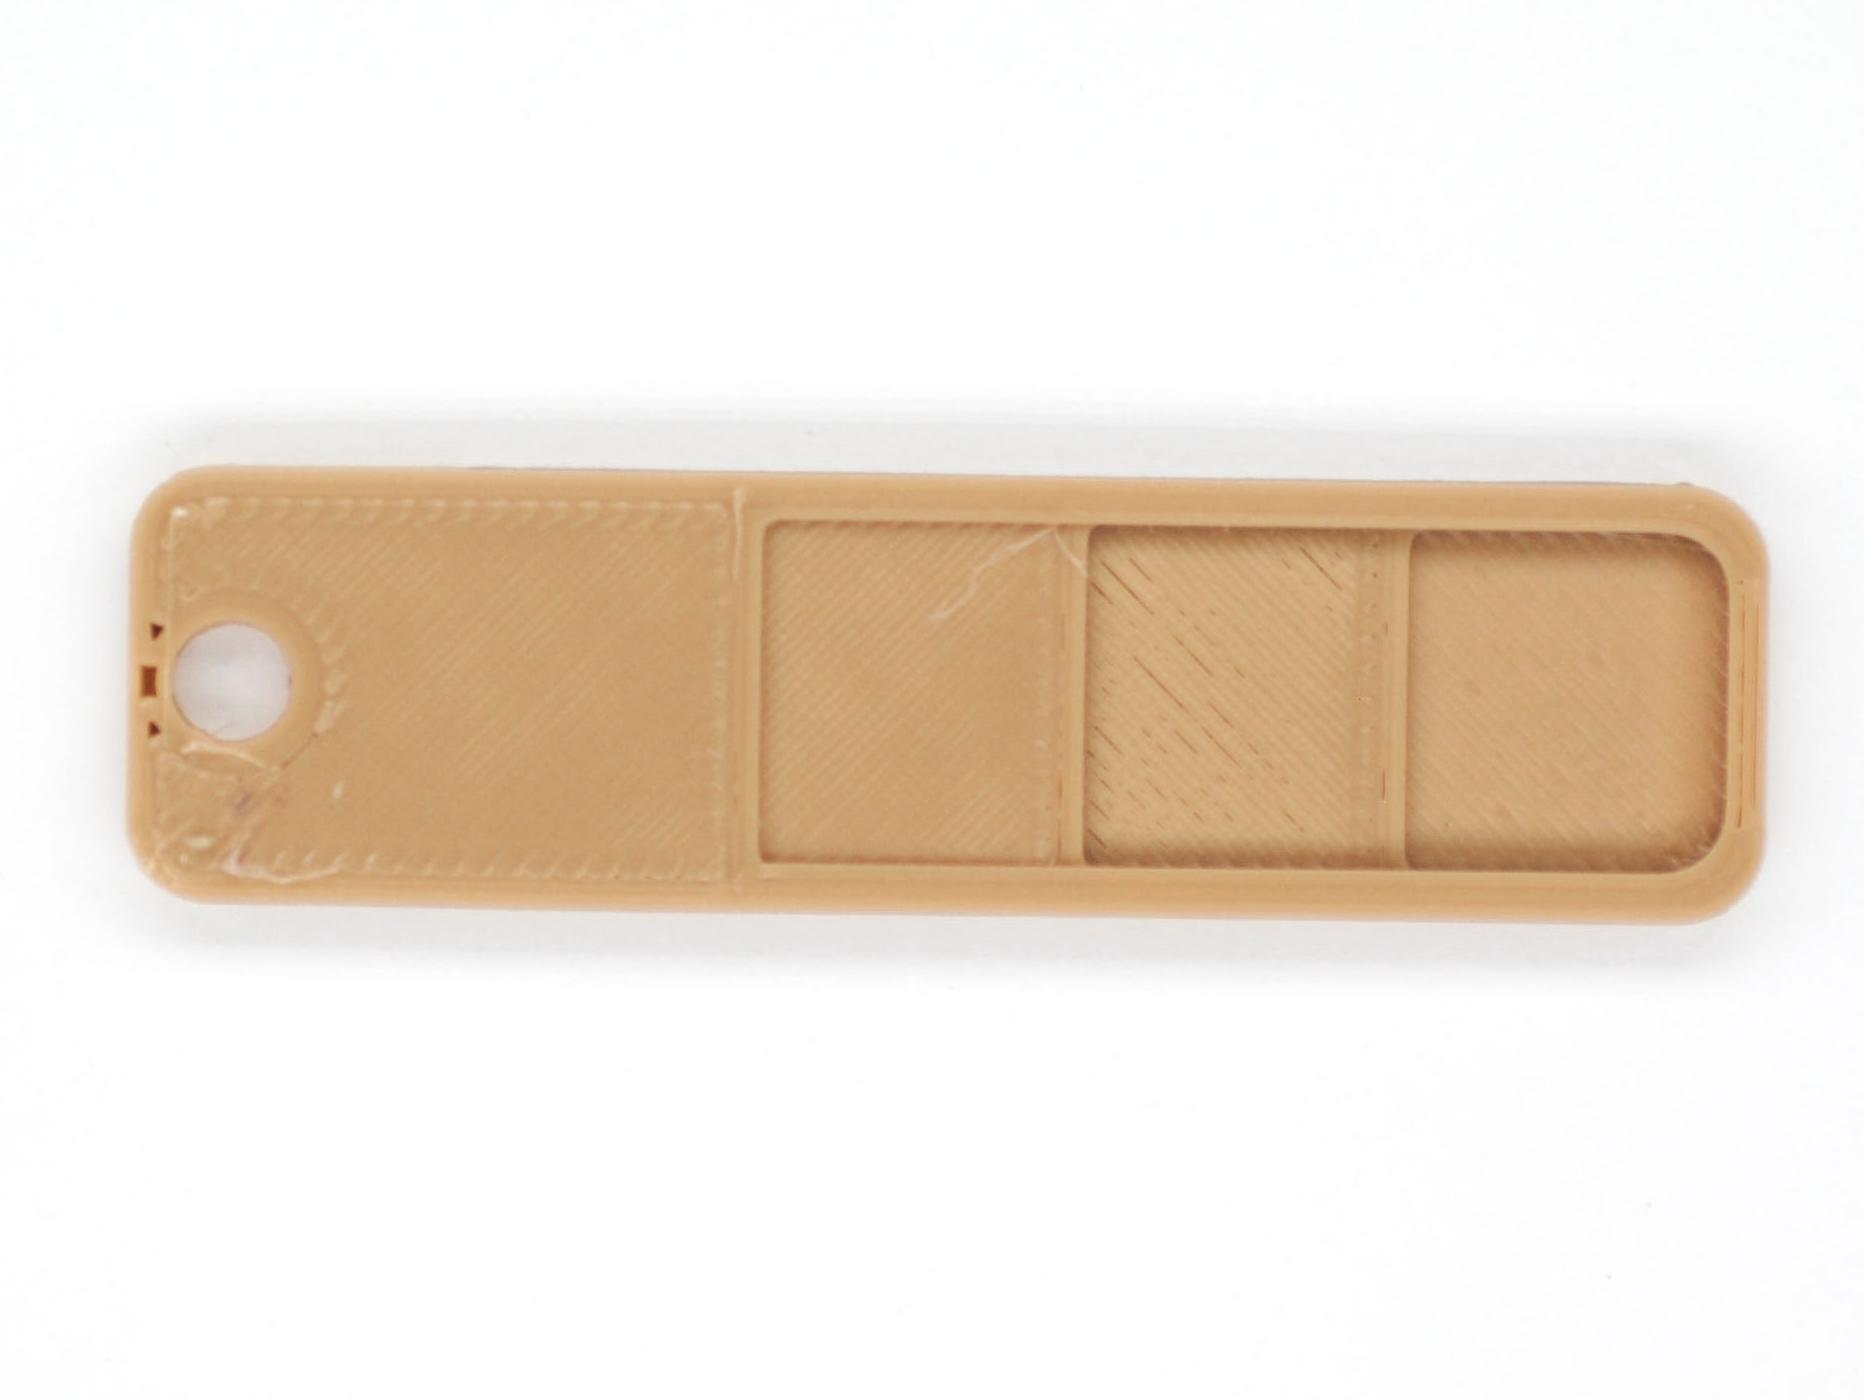 An image of the front of the color swatch.